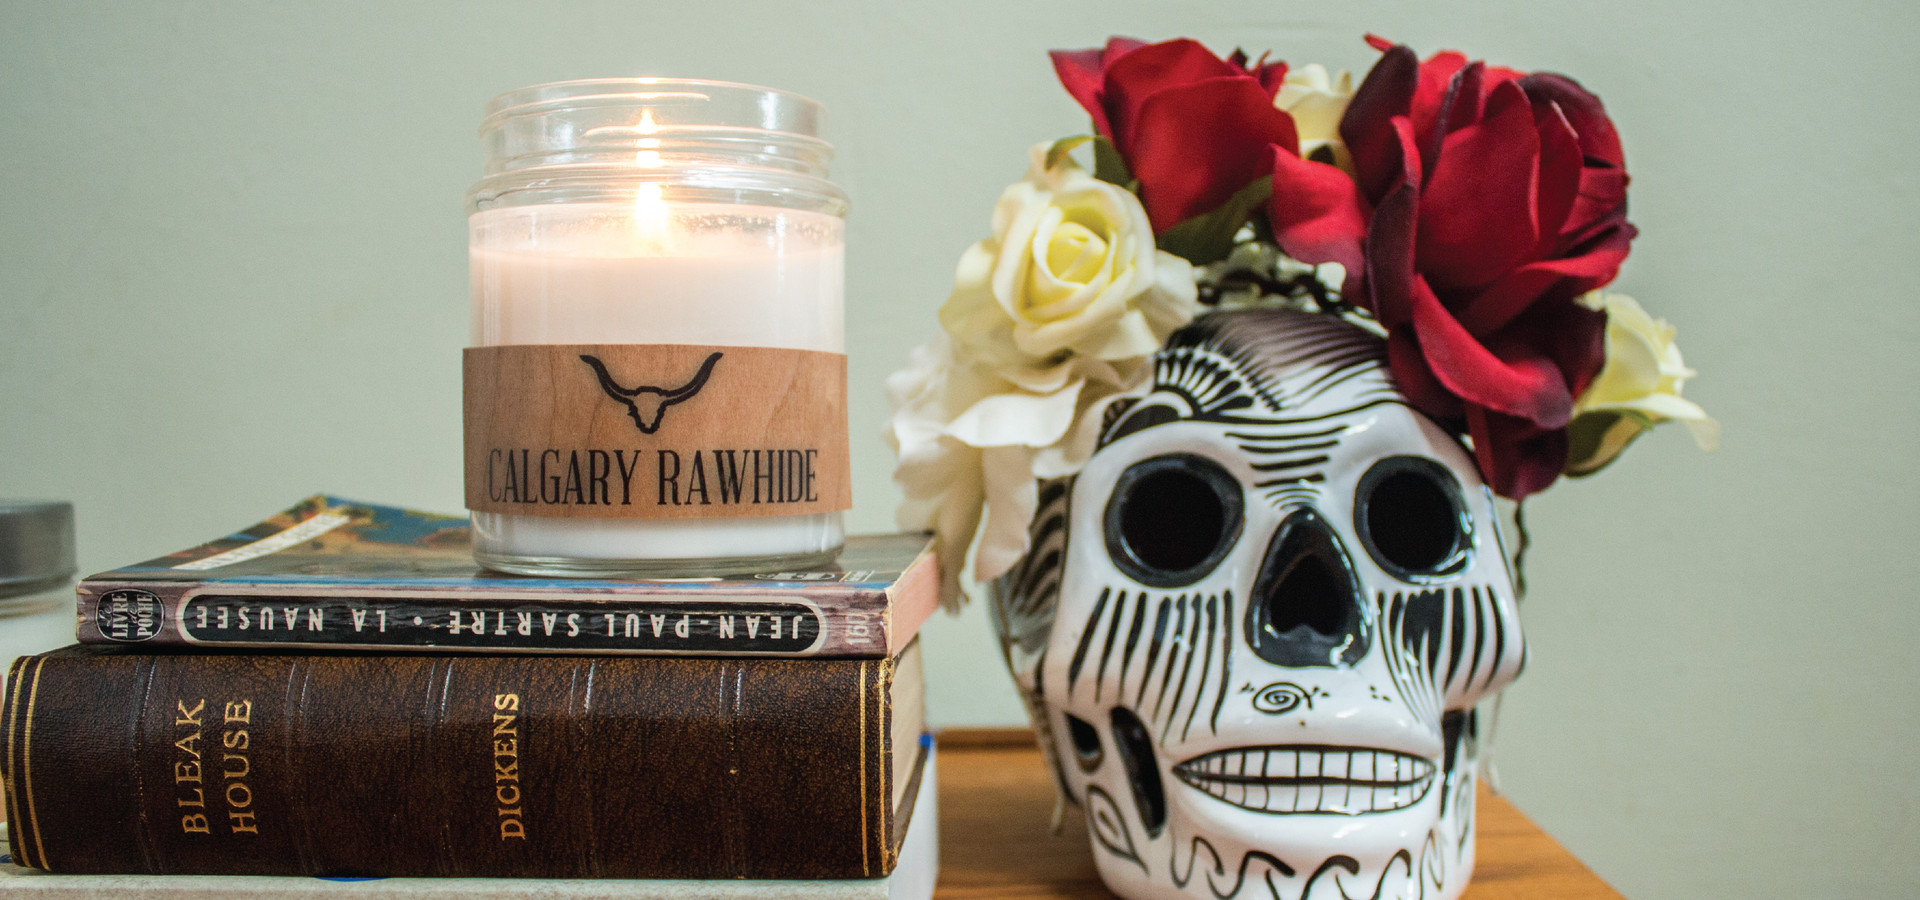 How about some fun candles like Calgary Rawhide or Jasper Park from  Smells Like Canada